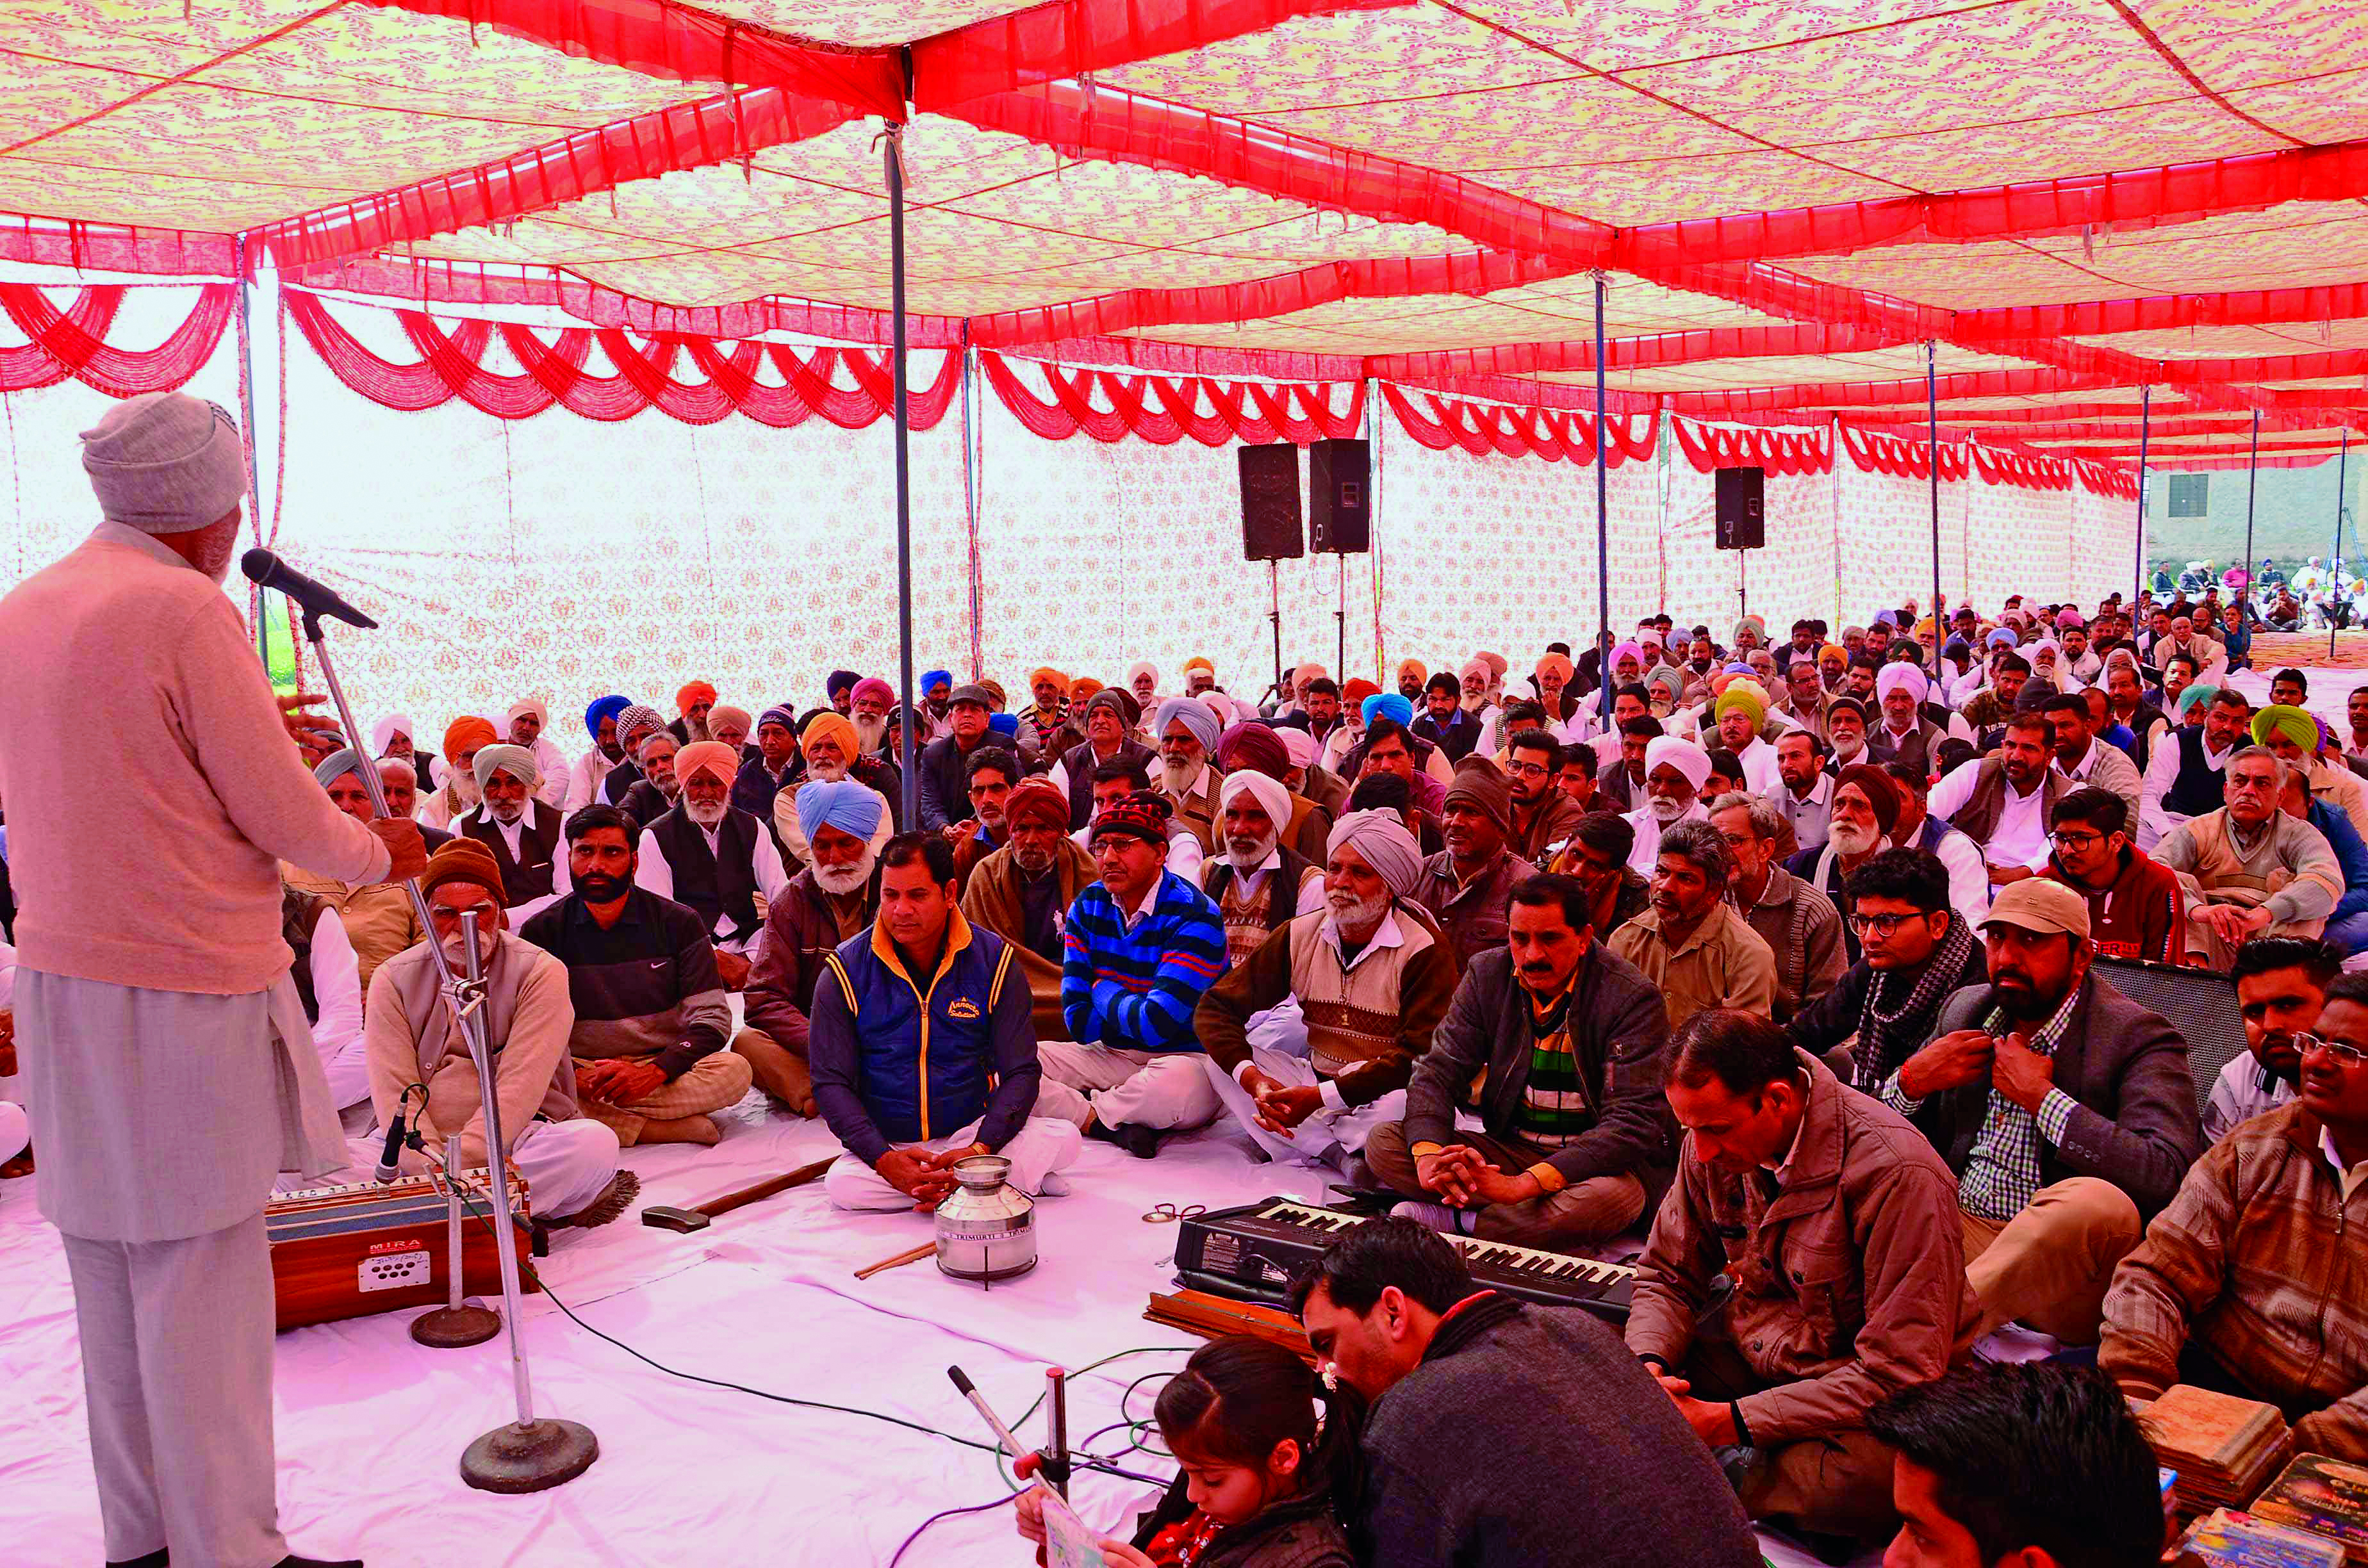 Sadh Sangat Lauds True Master Majesty In Block Namcharcha